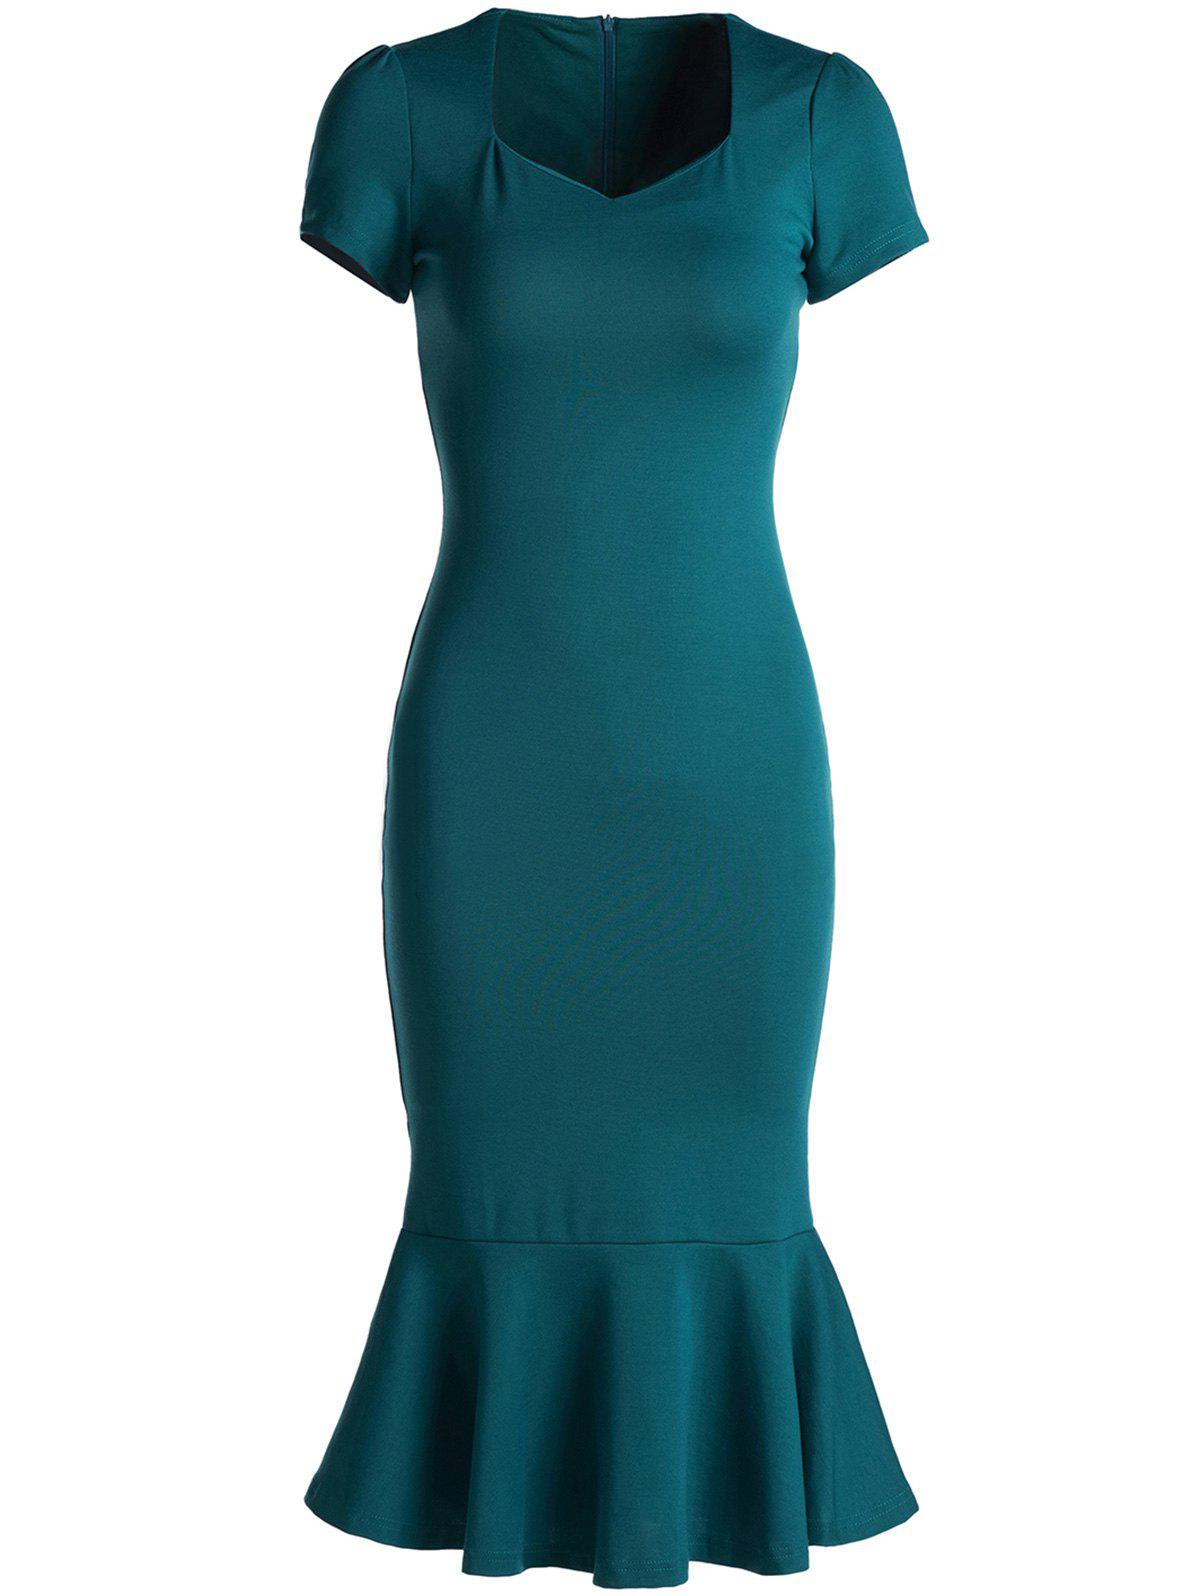 Elegant Green Sweetheart Neck Bodycon Fishtail Dress For Women ноутбук dell inspiron 3567 3567 7855 3567 7855